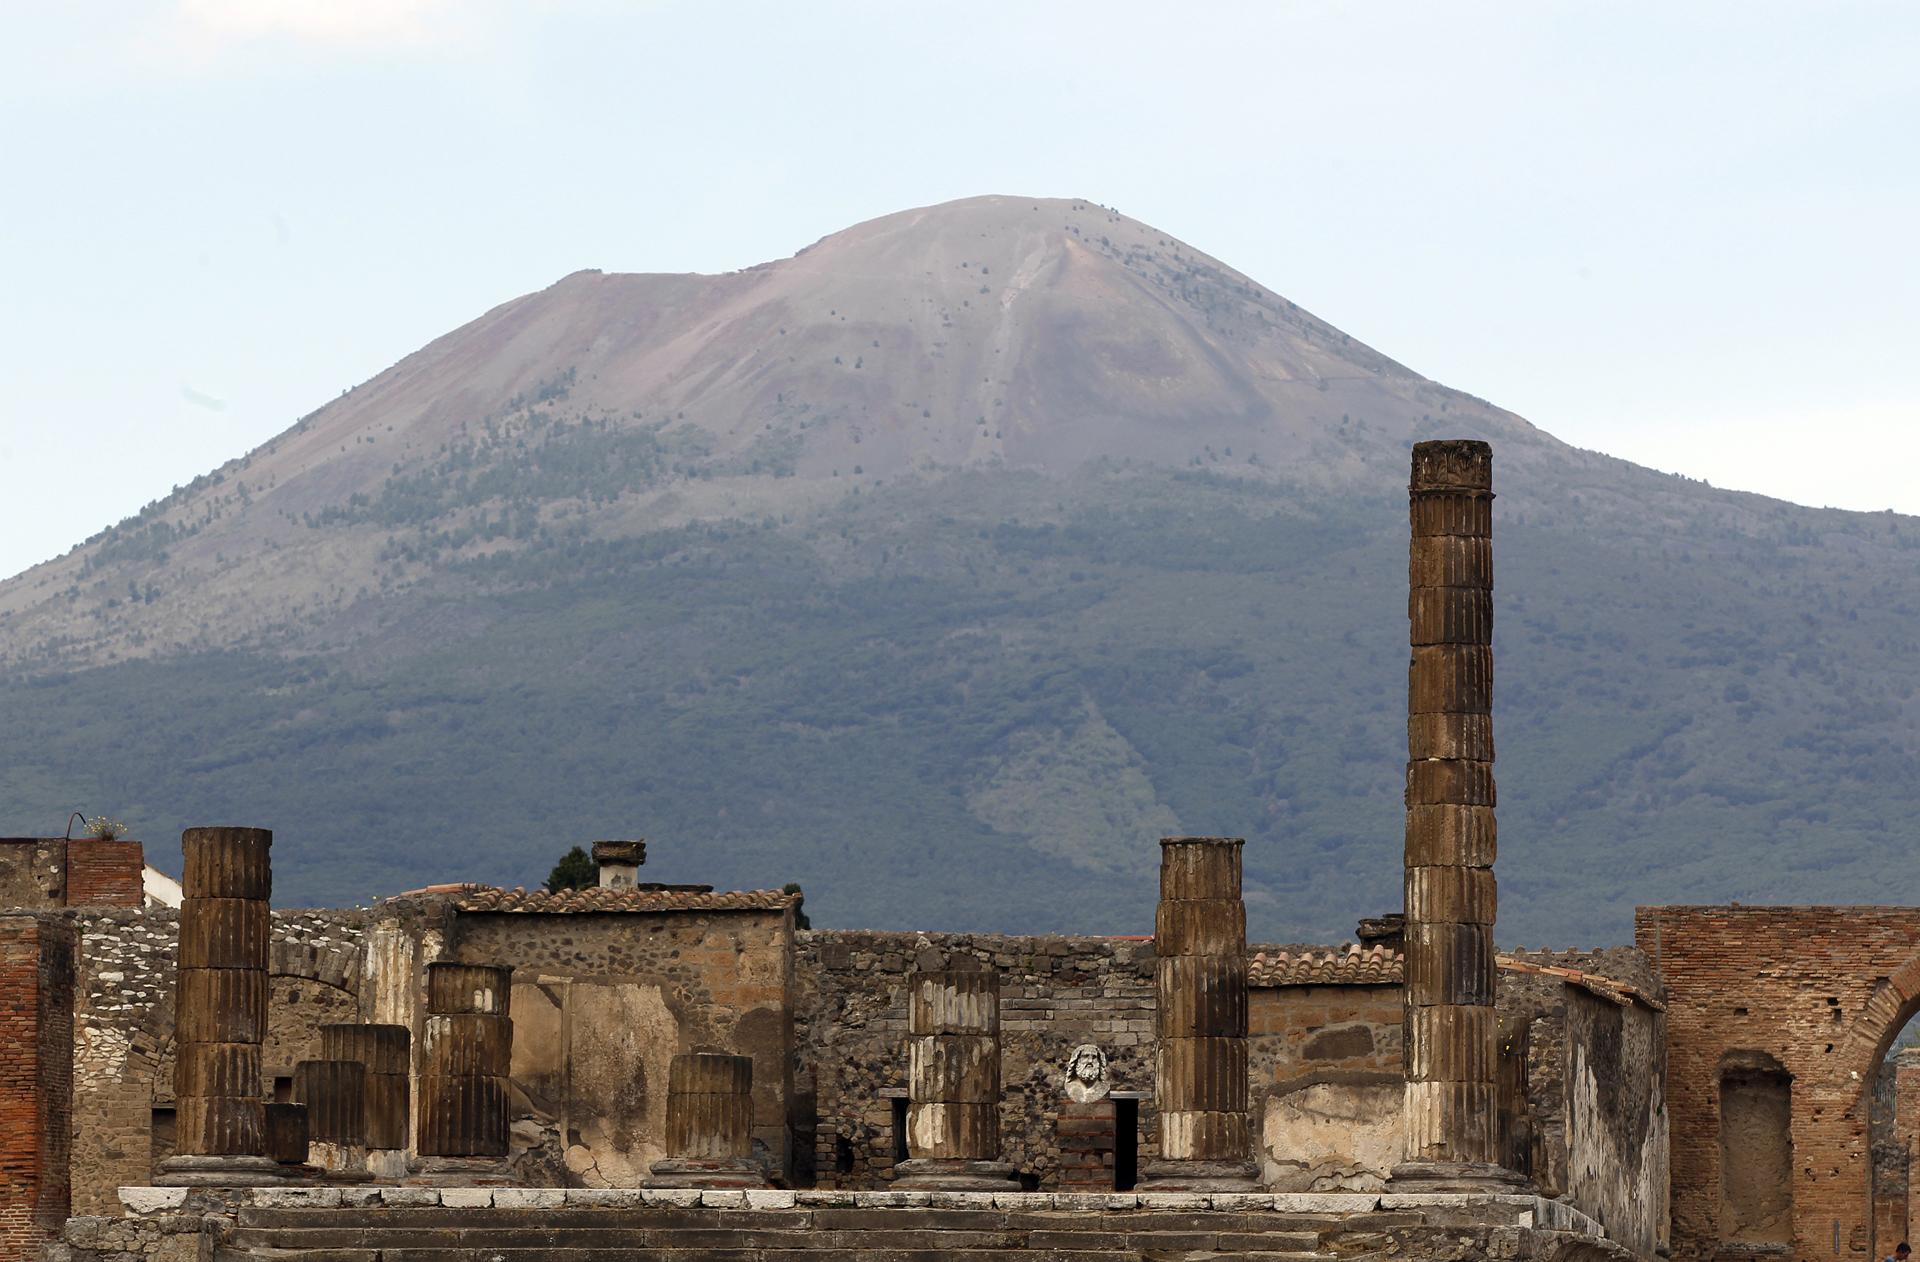 Pompeii ruins 'hiding 10 unexploded WW2 bombs,' archaeologists warn thumbnail